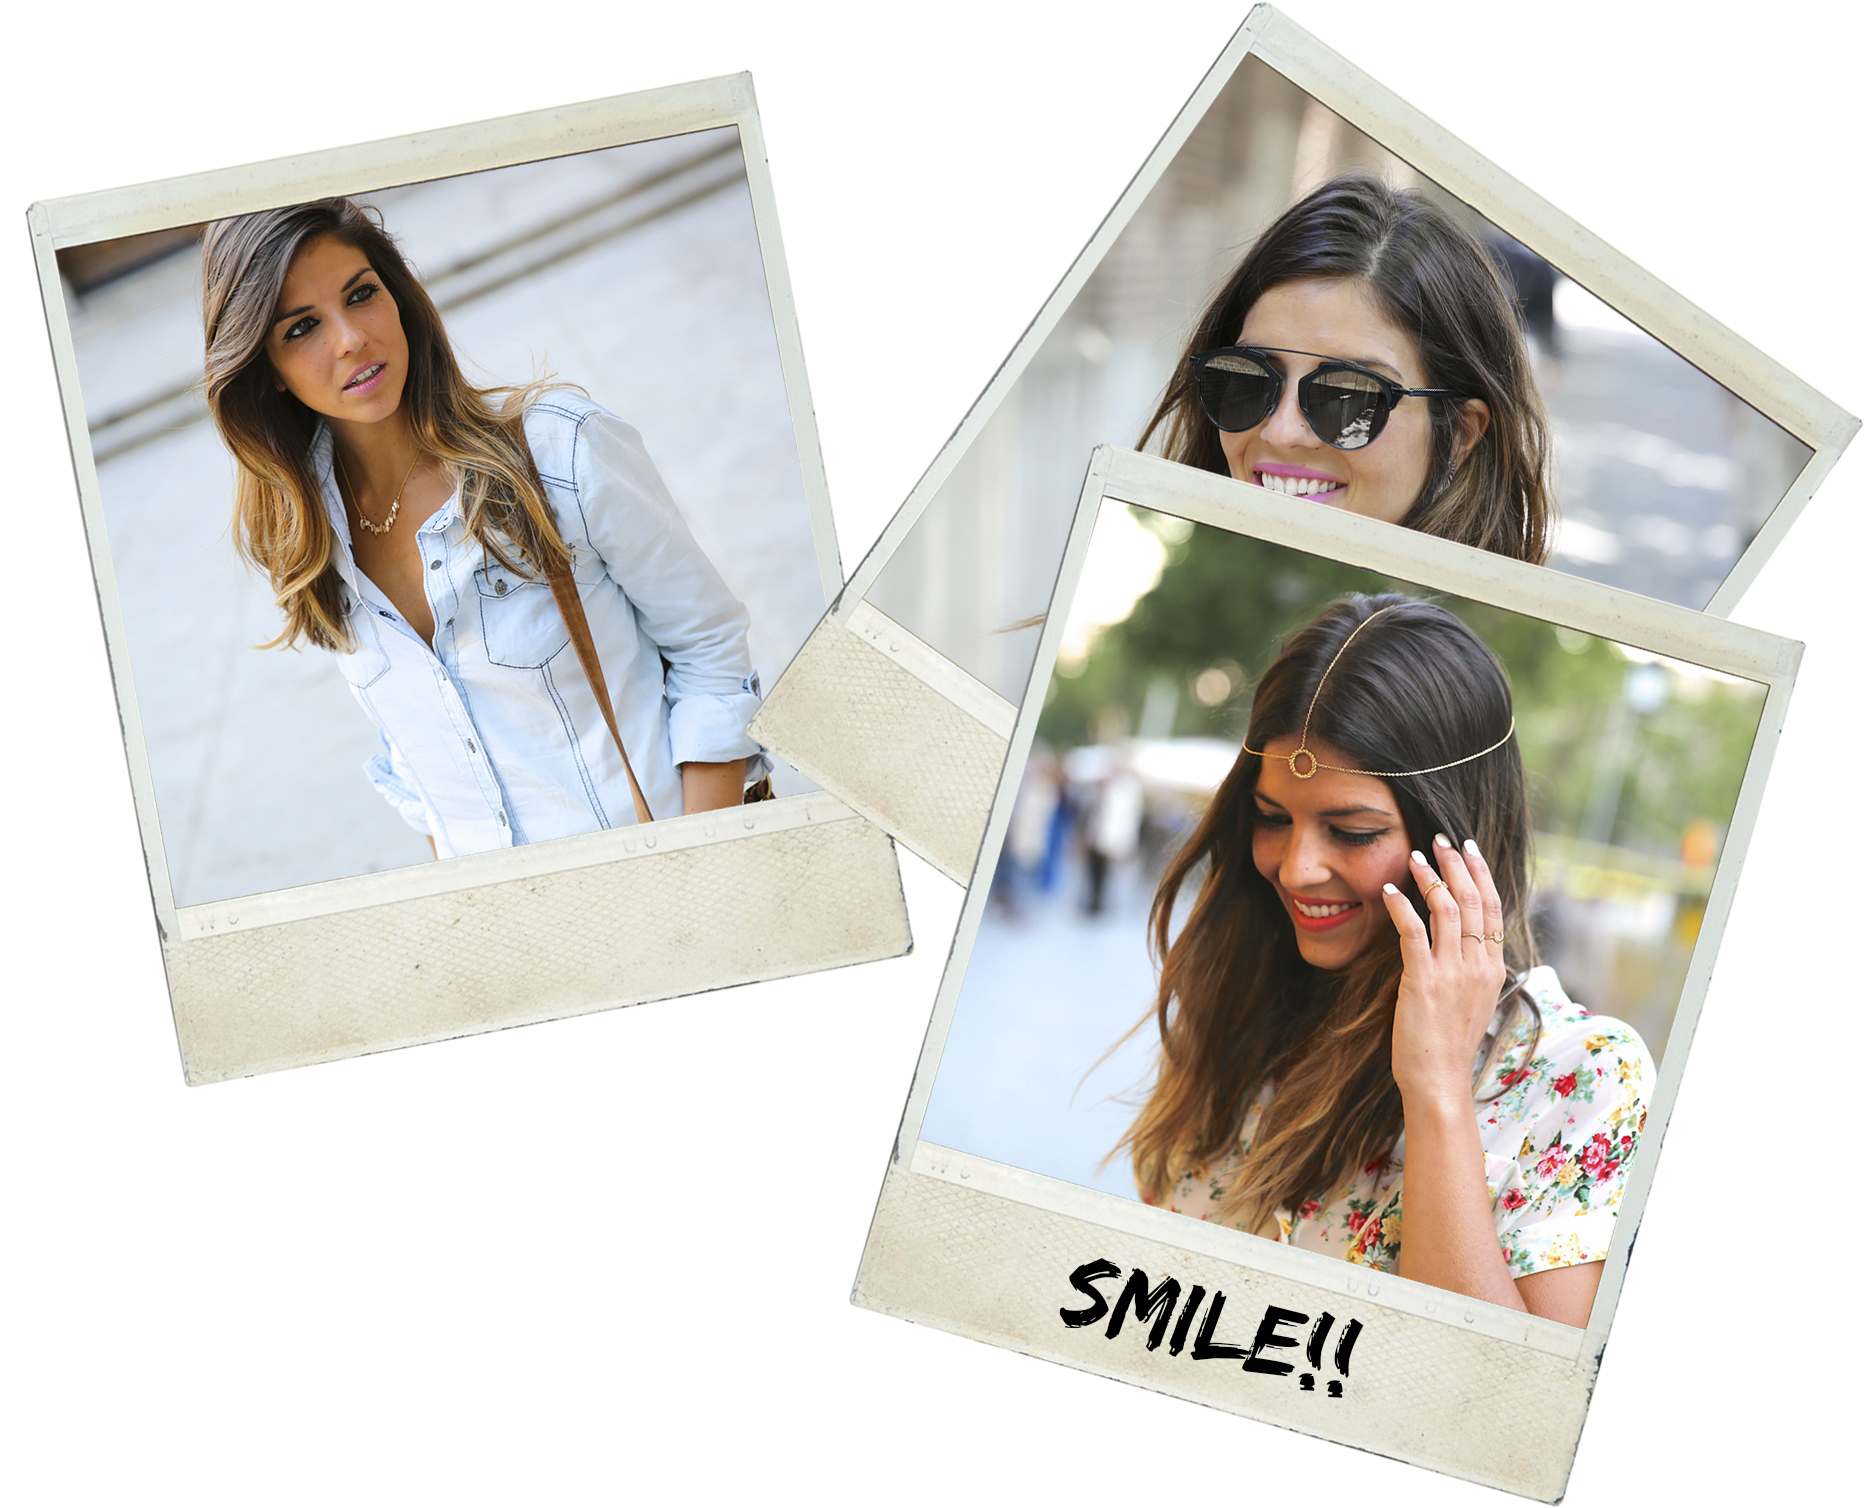 trendy_taste-look-outfit-street_style-lipsticks-beauty-belleza-labiales-blog-blogger-moda_españa-fashion_spain-polaroid